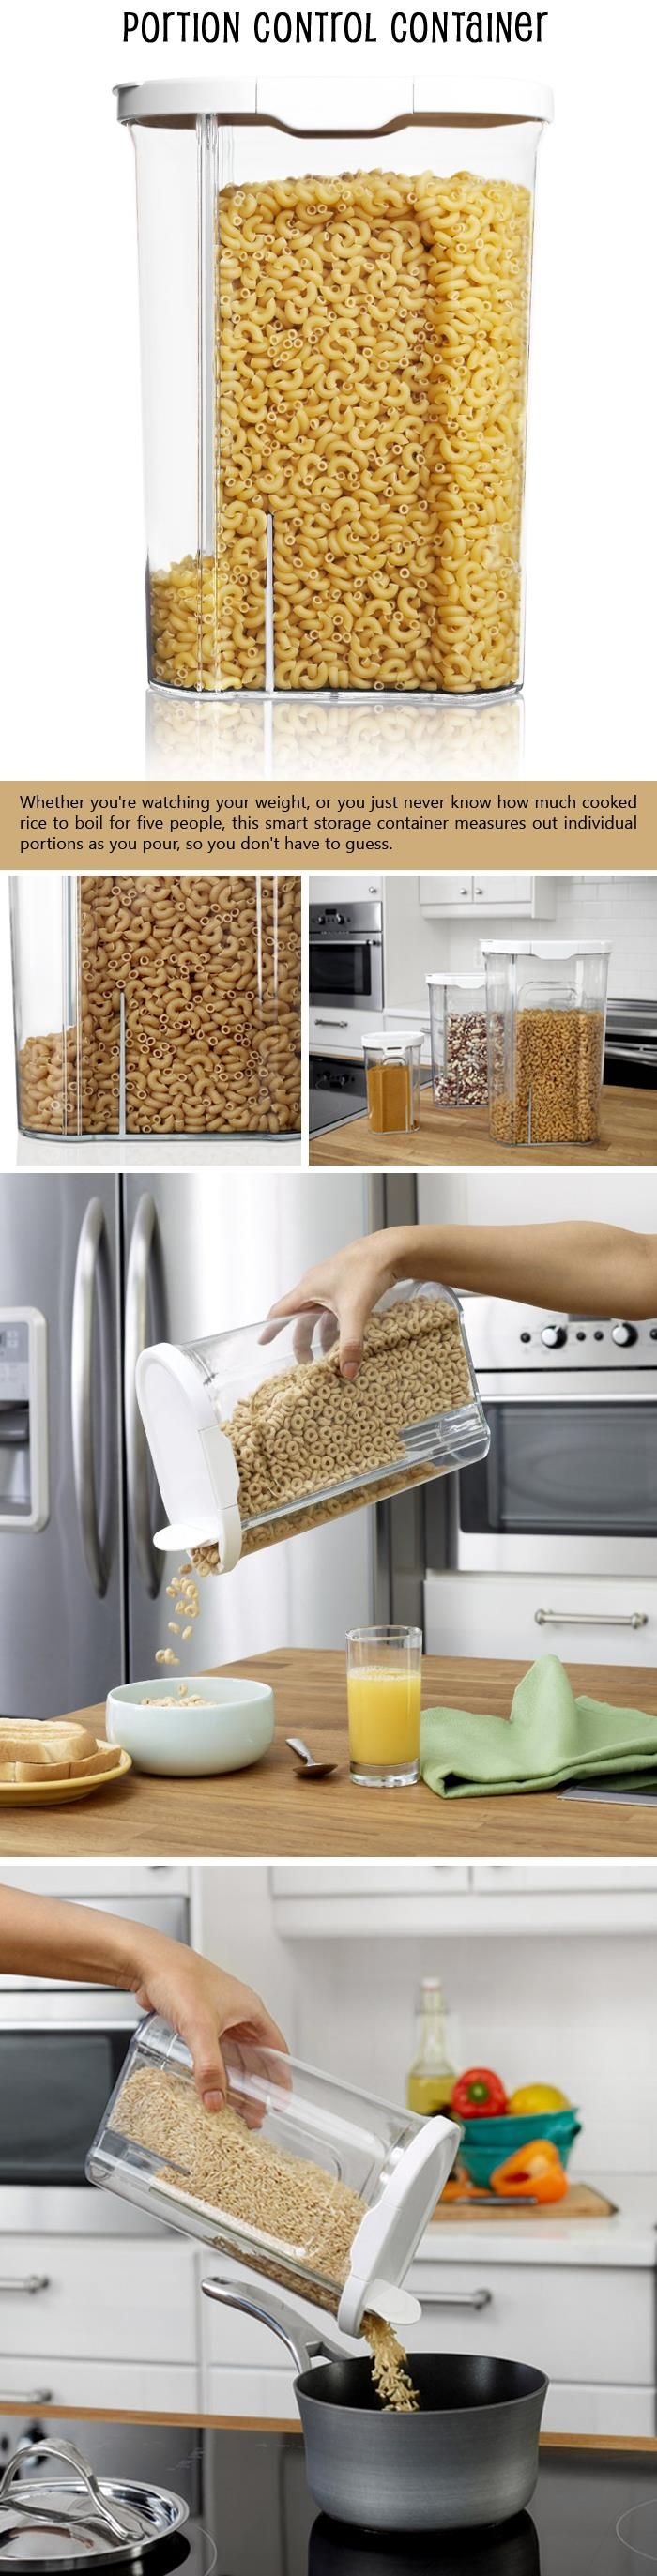 486 best dream kitchen equipment images on pinterest cooking ware #1: c138356212e929c13f4c3d89914939b6 fun gadgets innovative products jpg